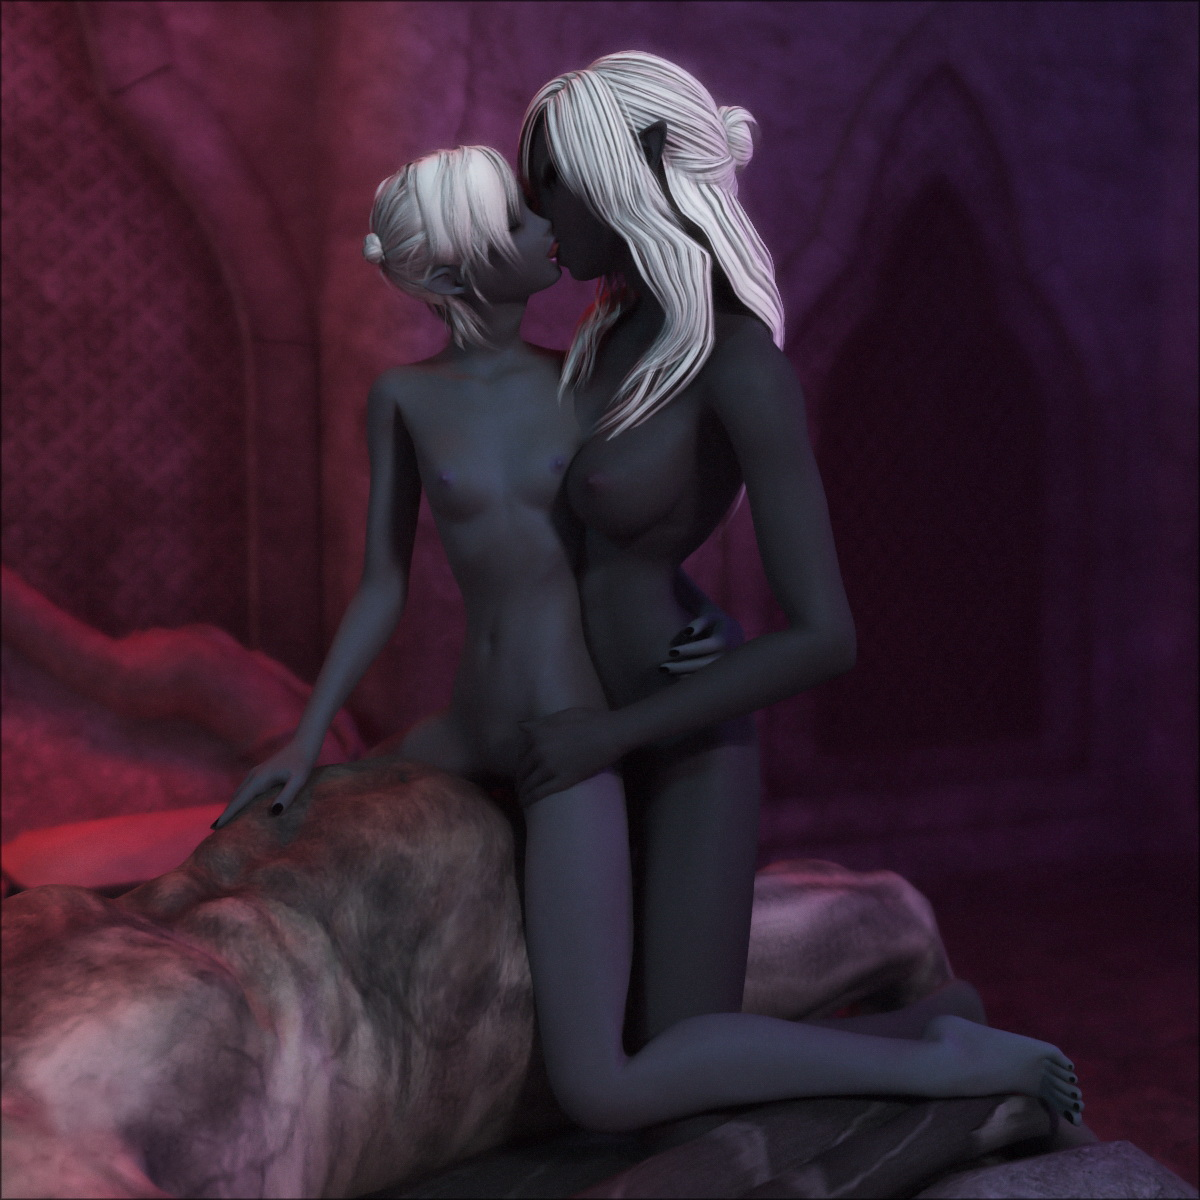 Free dark elf & monster porno nackt pictures